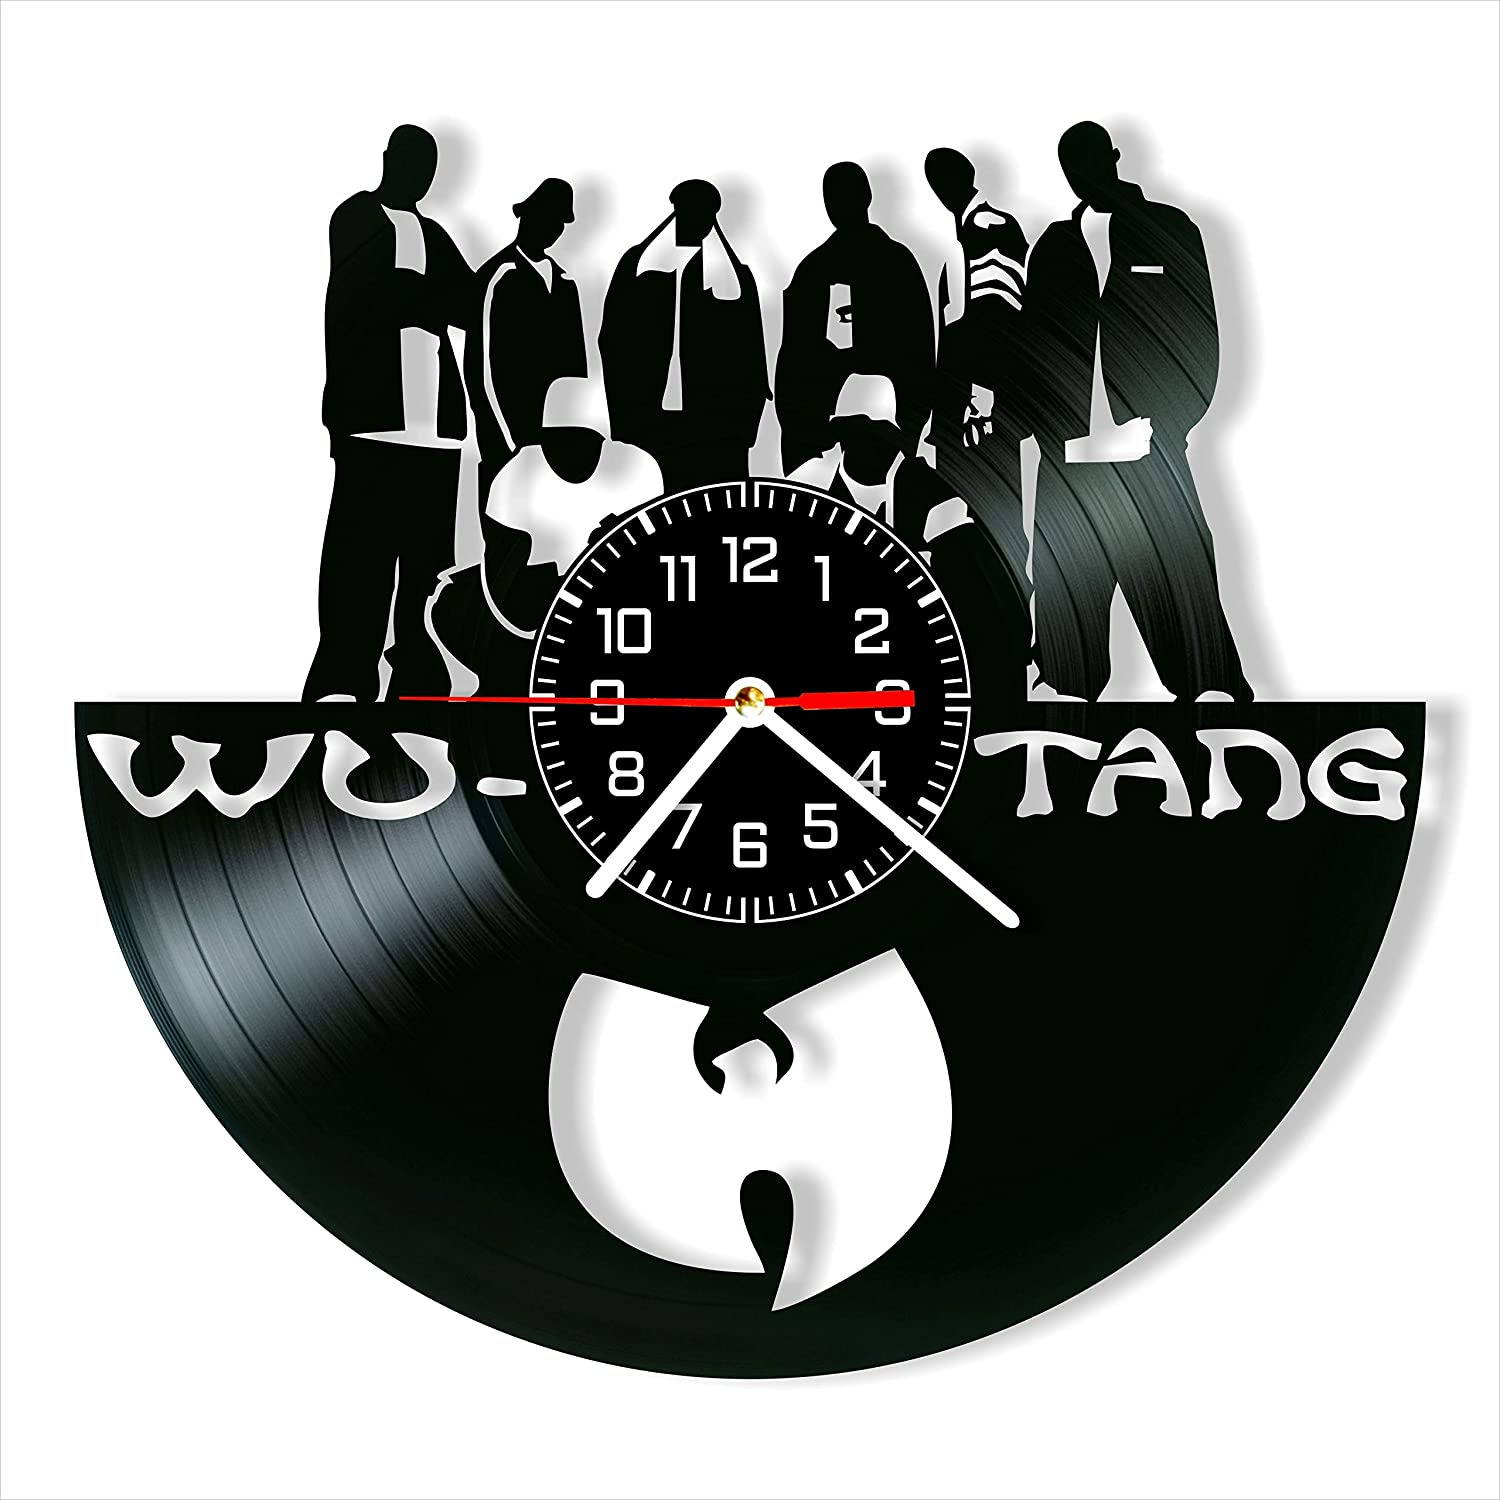 Wu - Tang Clan Vinyl Clock, Wu Tang Clan Wall Clock 12 inch (30 cm), Original Gifts for Fans WuTang Clan, The Best Home Decorations, Unique Art Decor, Original Idea for Home Decor